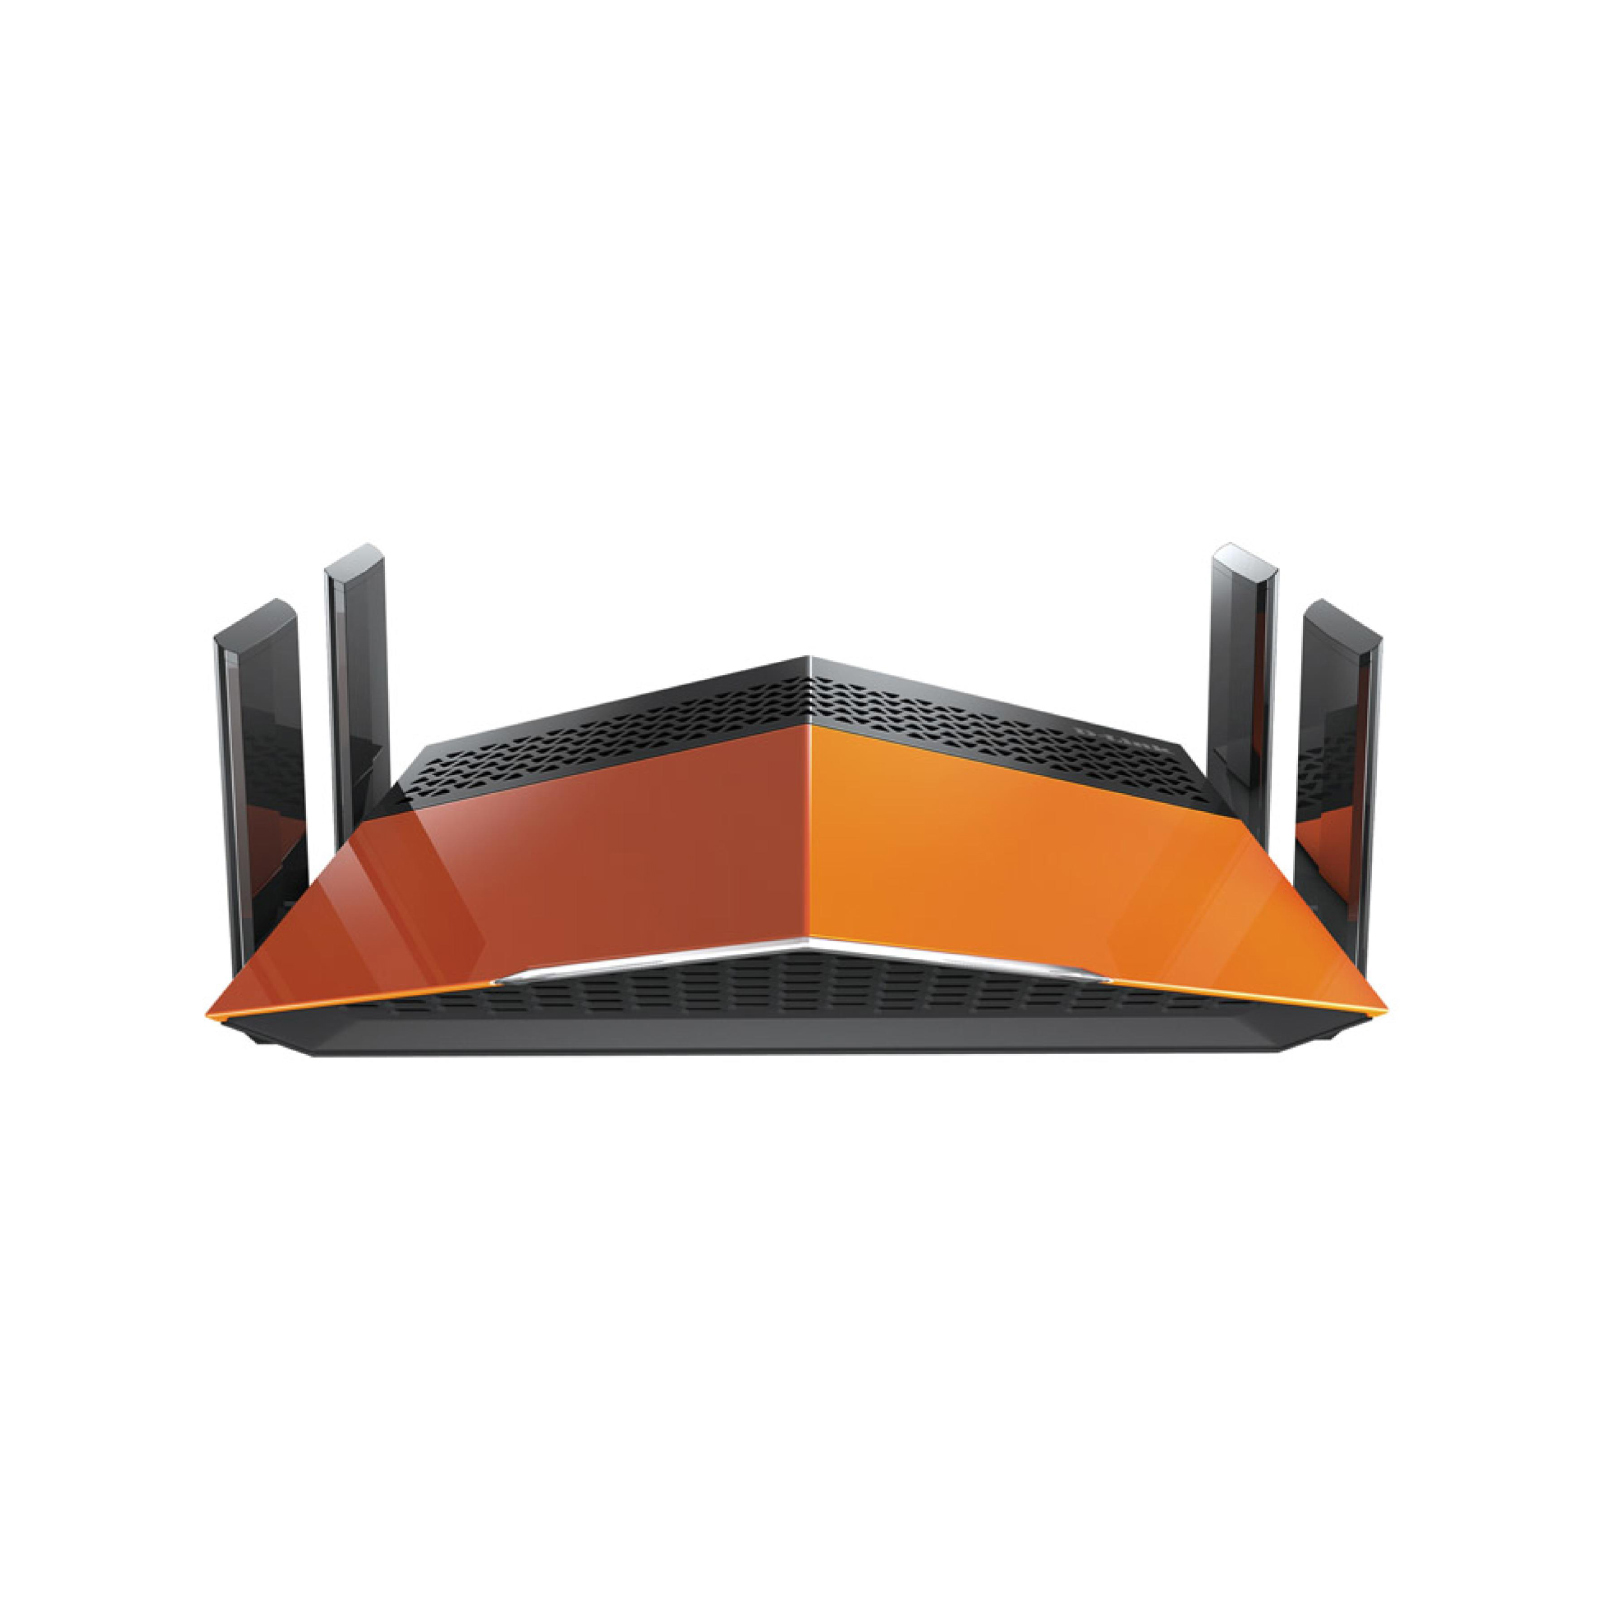 D-LINKDUAL BAND ROUTER WAN 4- 3 YEAR CARRY IN WARRANTY